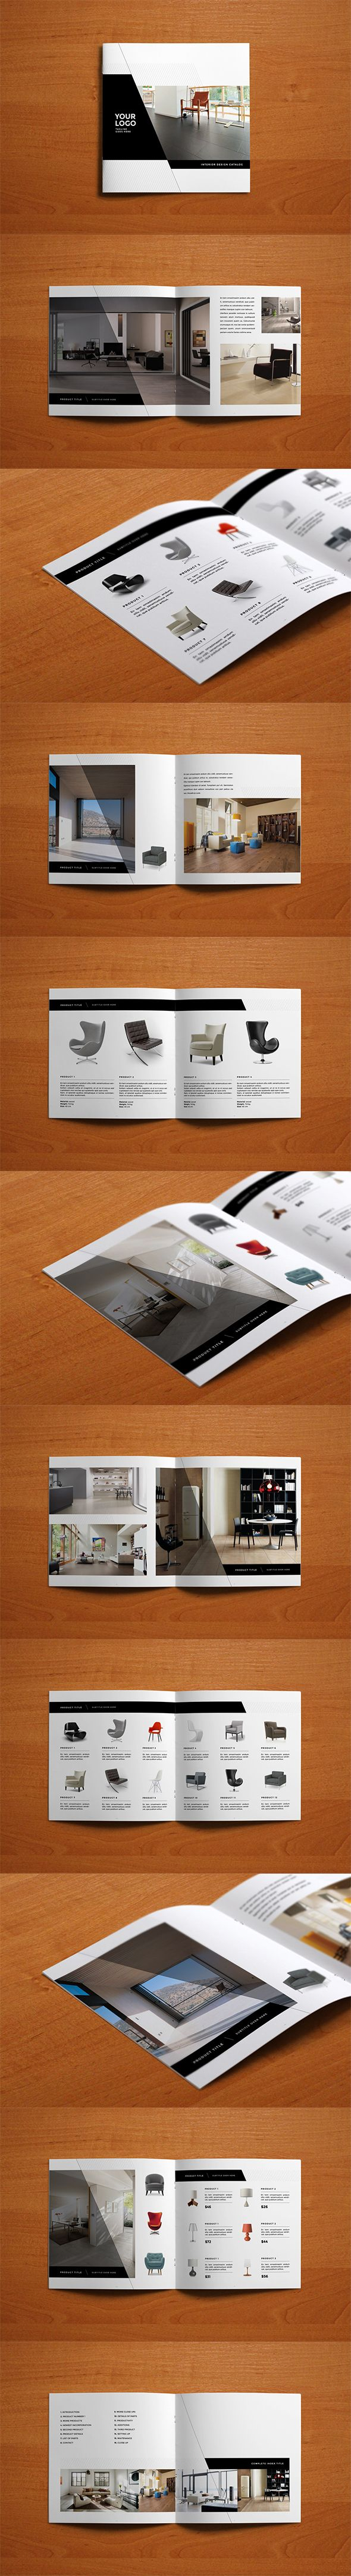 Minimal Interior Design Catalog. Download here: http://graphicriver.net/item/minimal-interior-design-catalog/9849569?ref=sinzo #design #brochure #catalog